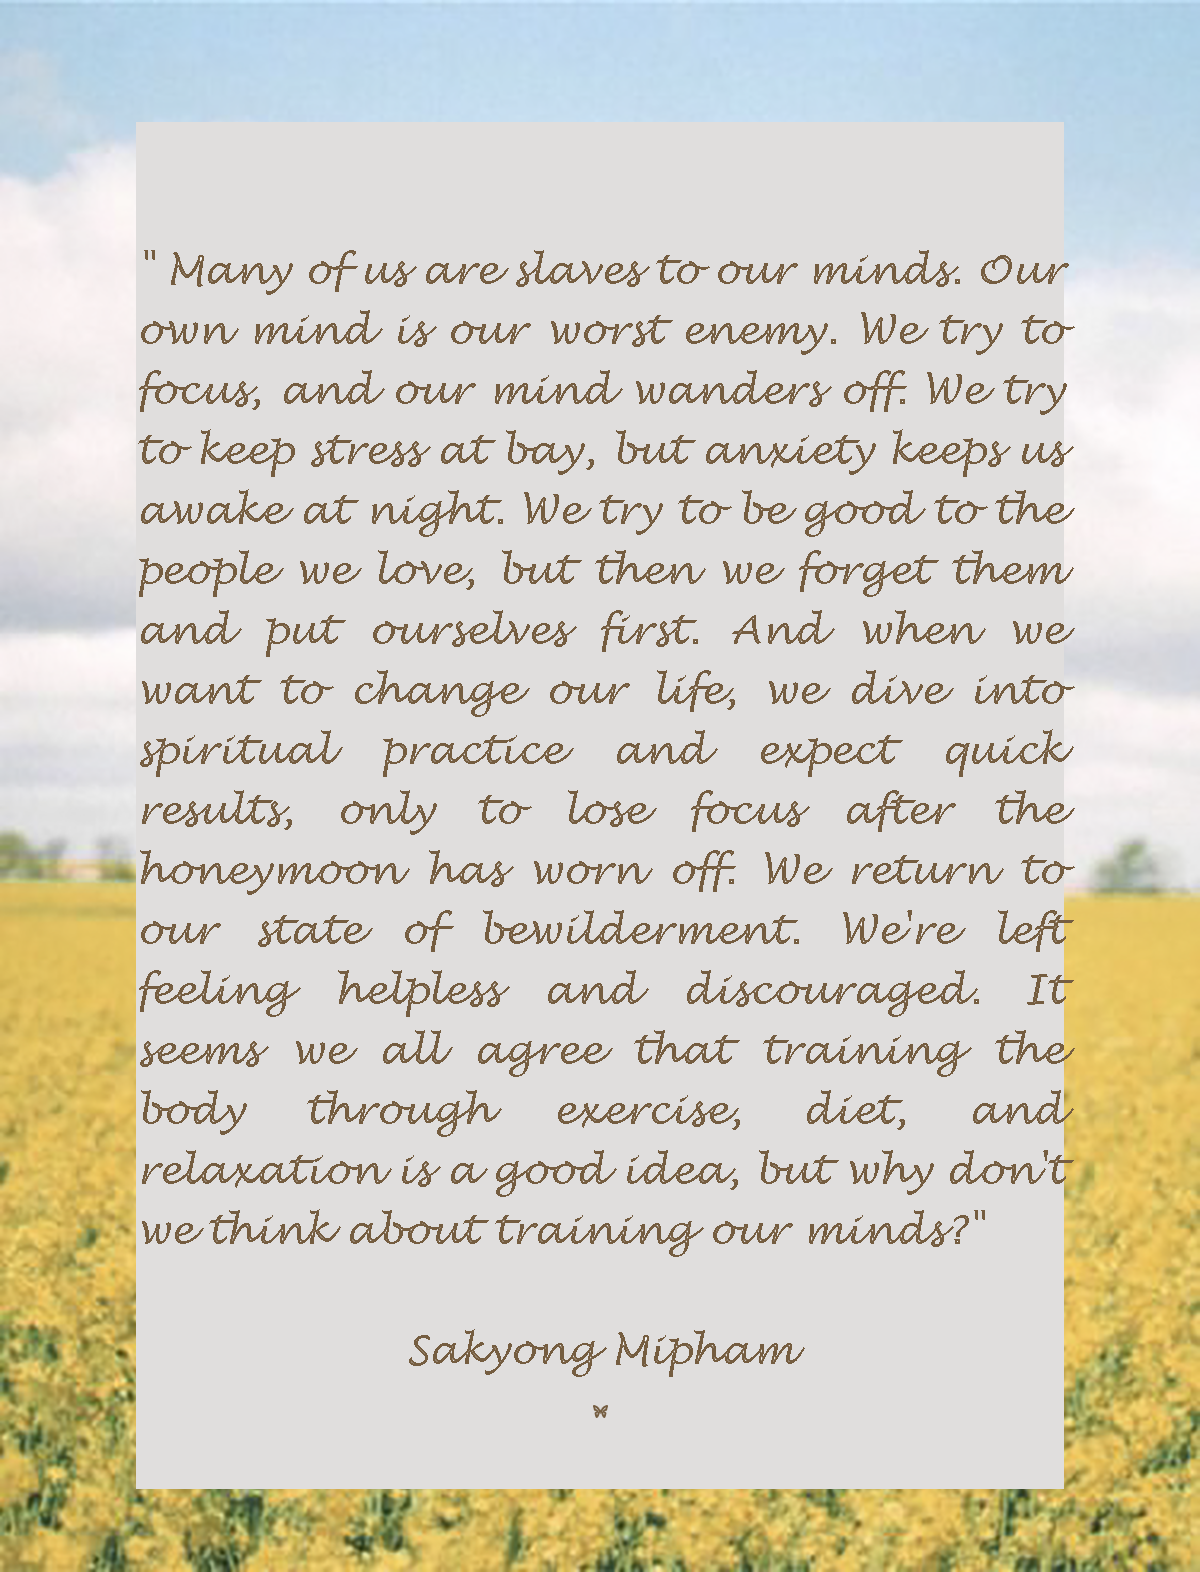 """"""" Many of us are slaves to our minds. Our own mind is our worst enemy. We try to focus, and our mind wanders off. We try to keep stress at bay, but anxiety keeps us awake at night. We try to be good to the people we love, but then we forget them and put ourselves first. And when we want to change our life, we dive into spiritual practice and expect quick results, only to lose focus after the honeymoon has worn off. We return to our state of bewilderment.... Sakyong Mipham"""